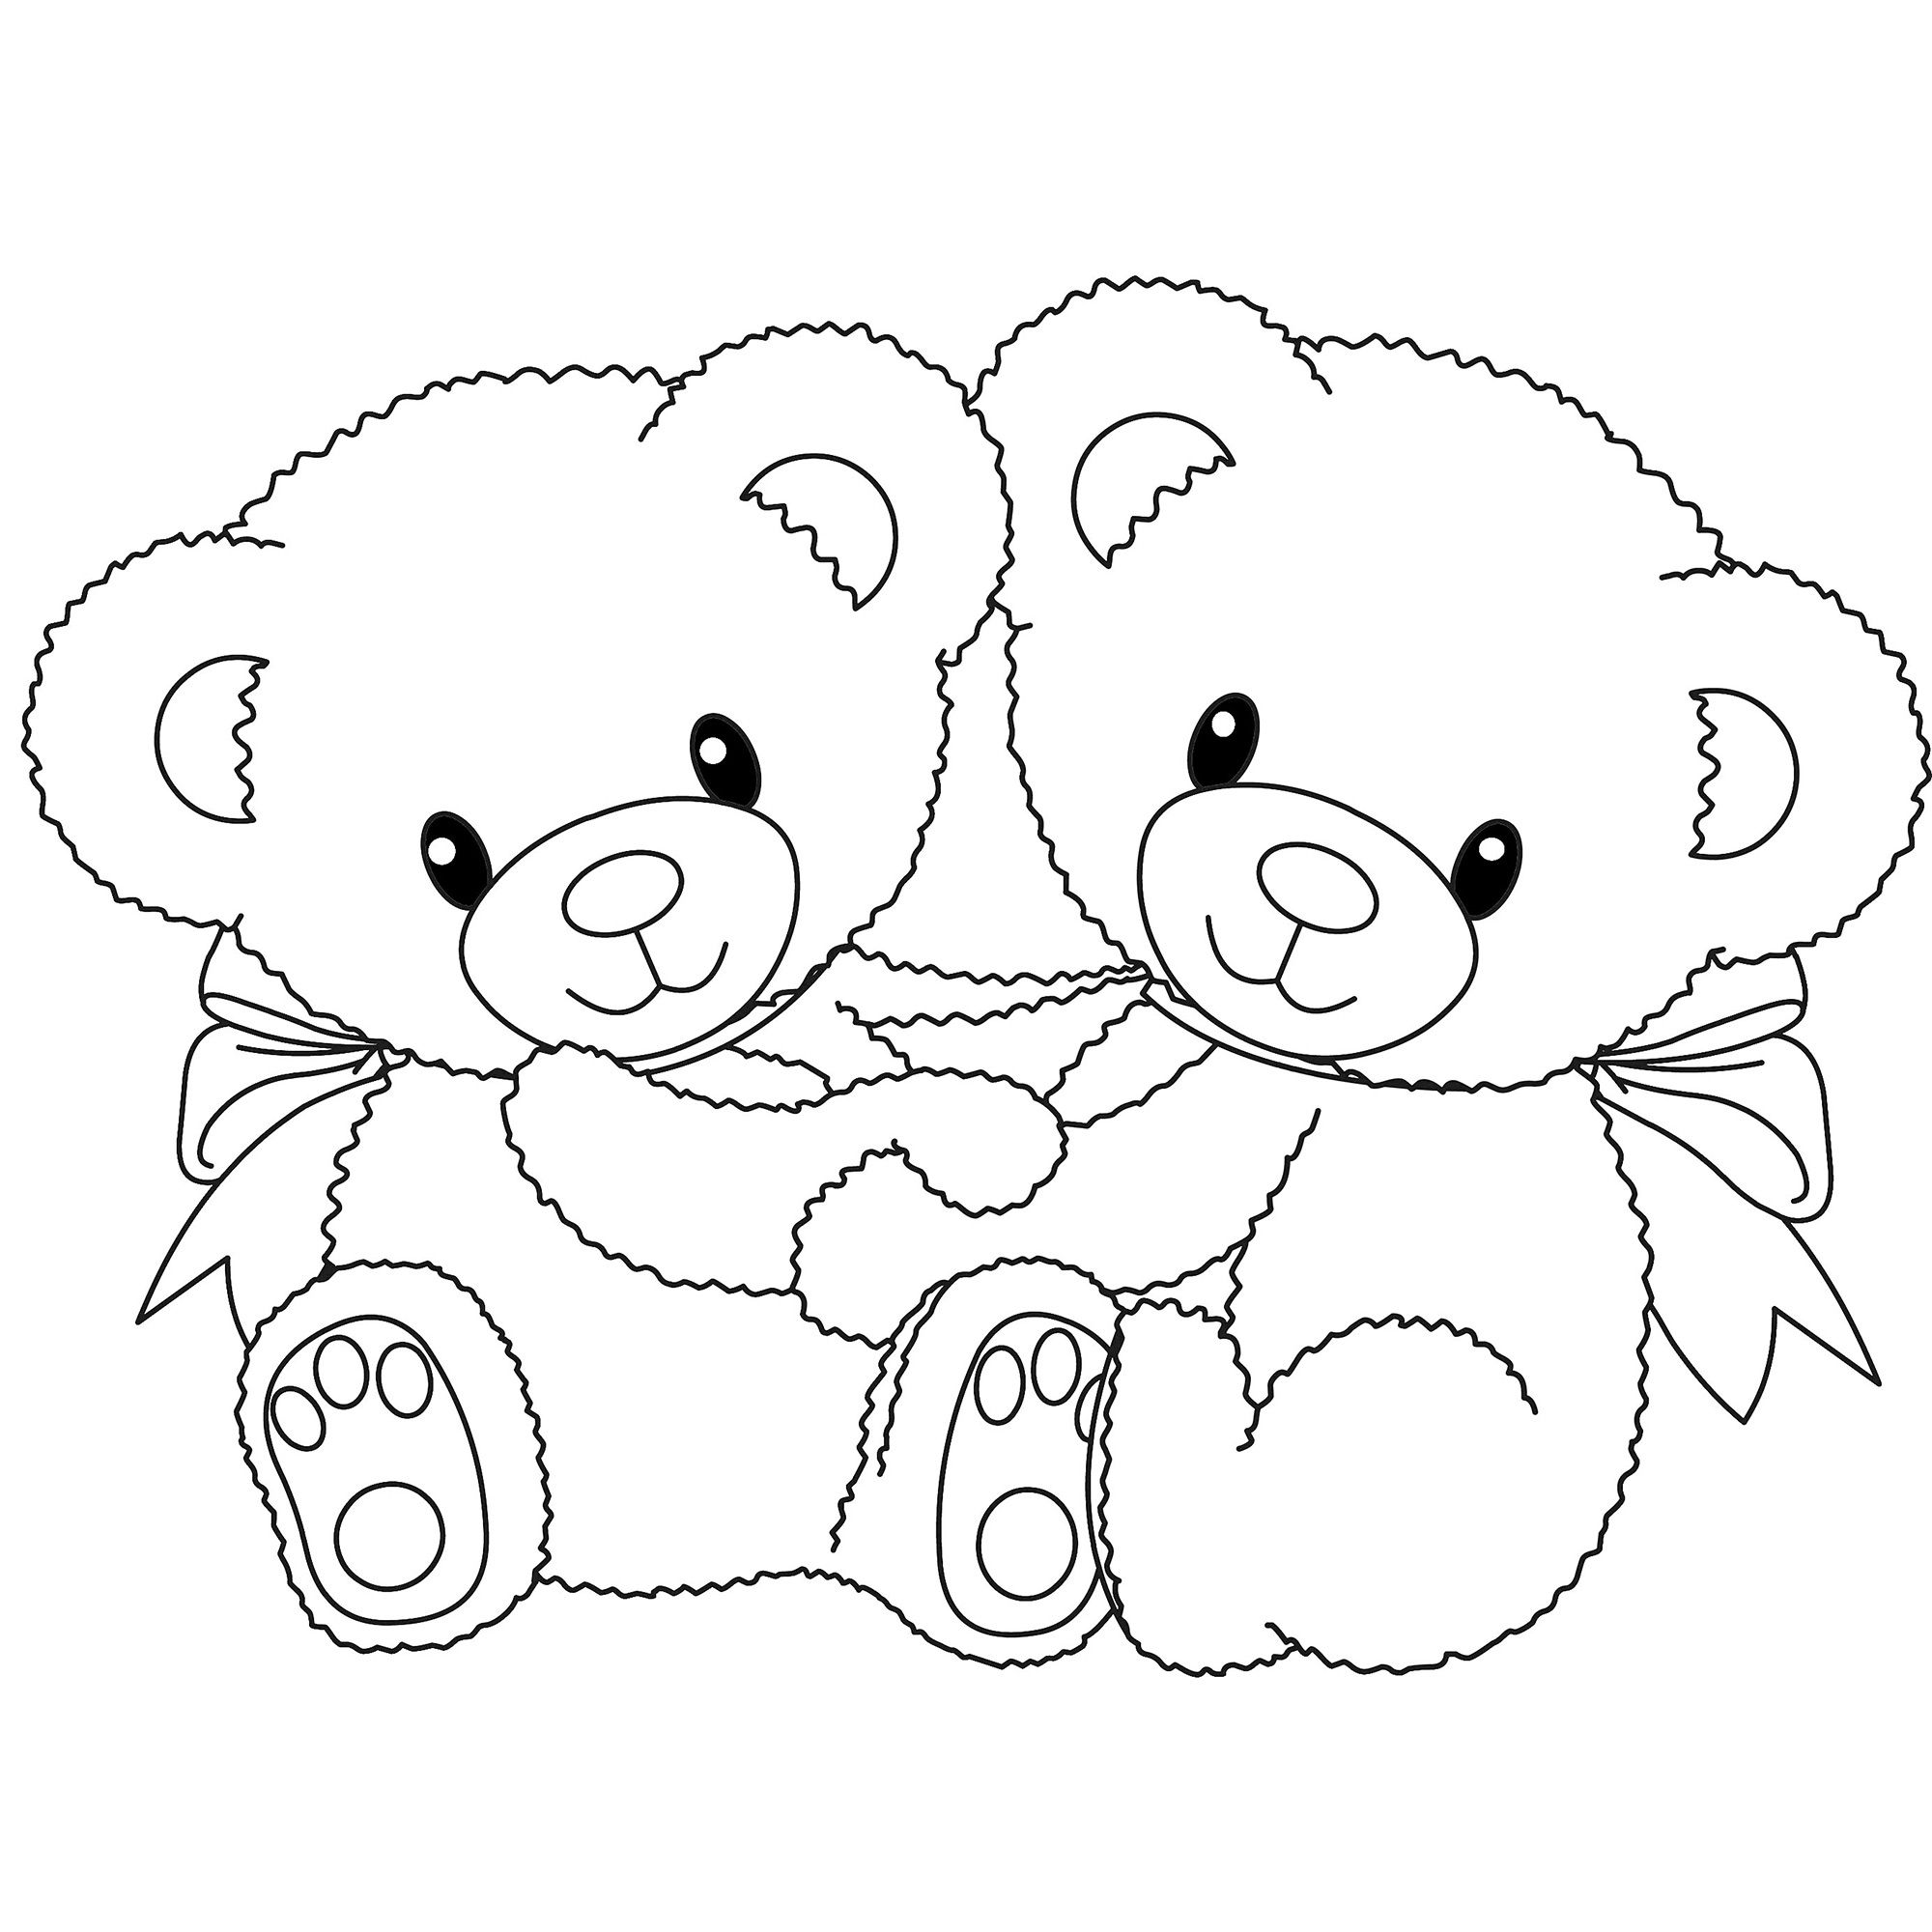 2000x2000 Teddy Bear Coloring Pages Free Printable Coloring Pages Clip Art